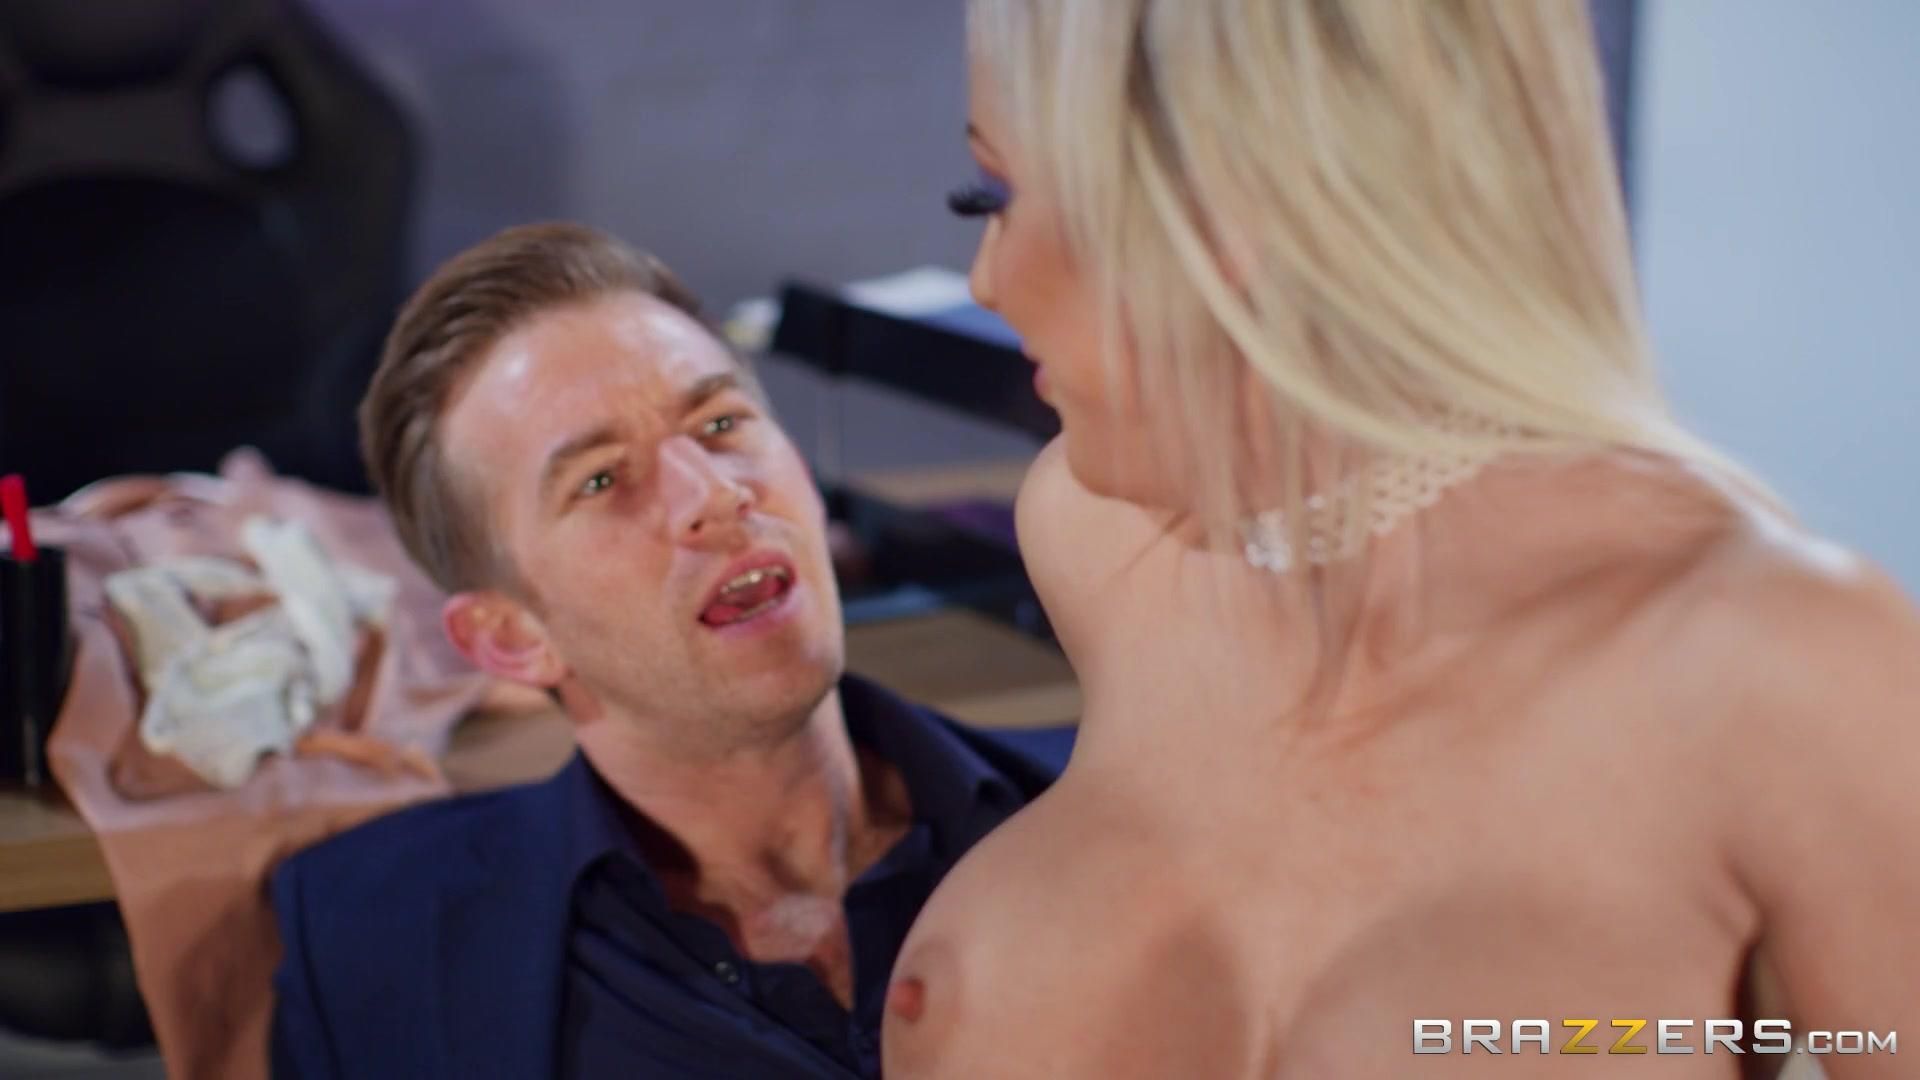 Big Tits At Work – Skyler Mckay Its Ergonomic